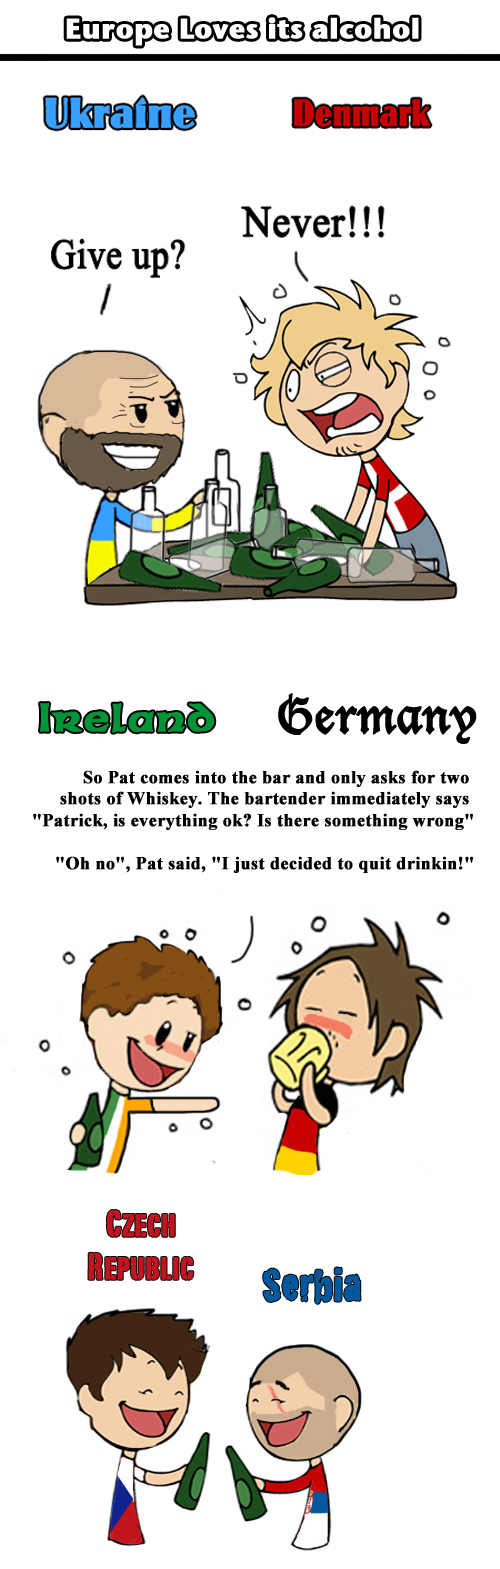 Europe loves its Alcohol by ShrapnelLeader